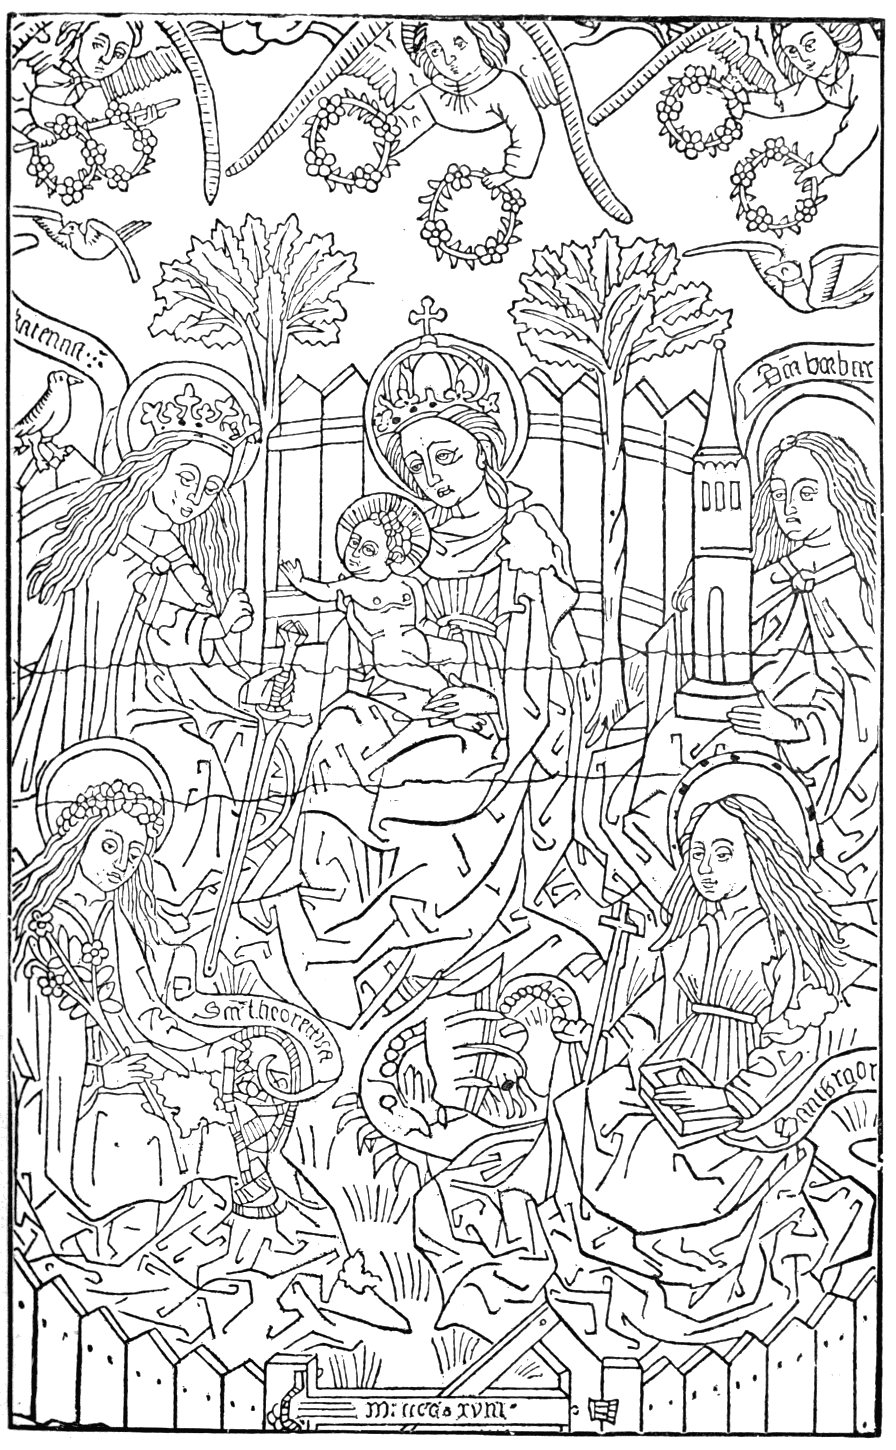 The coloring book project 2nd edition - The Virgin With Four Saints